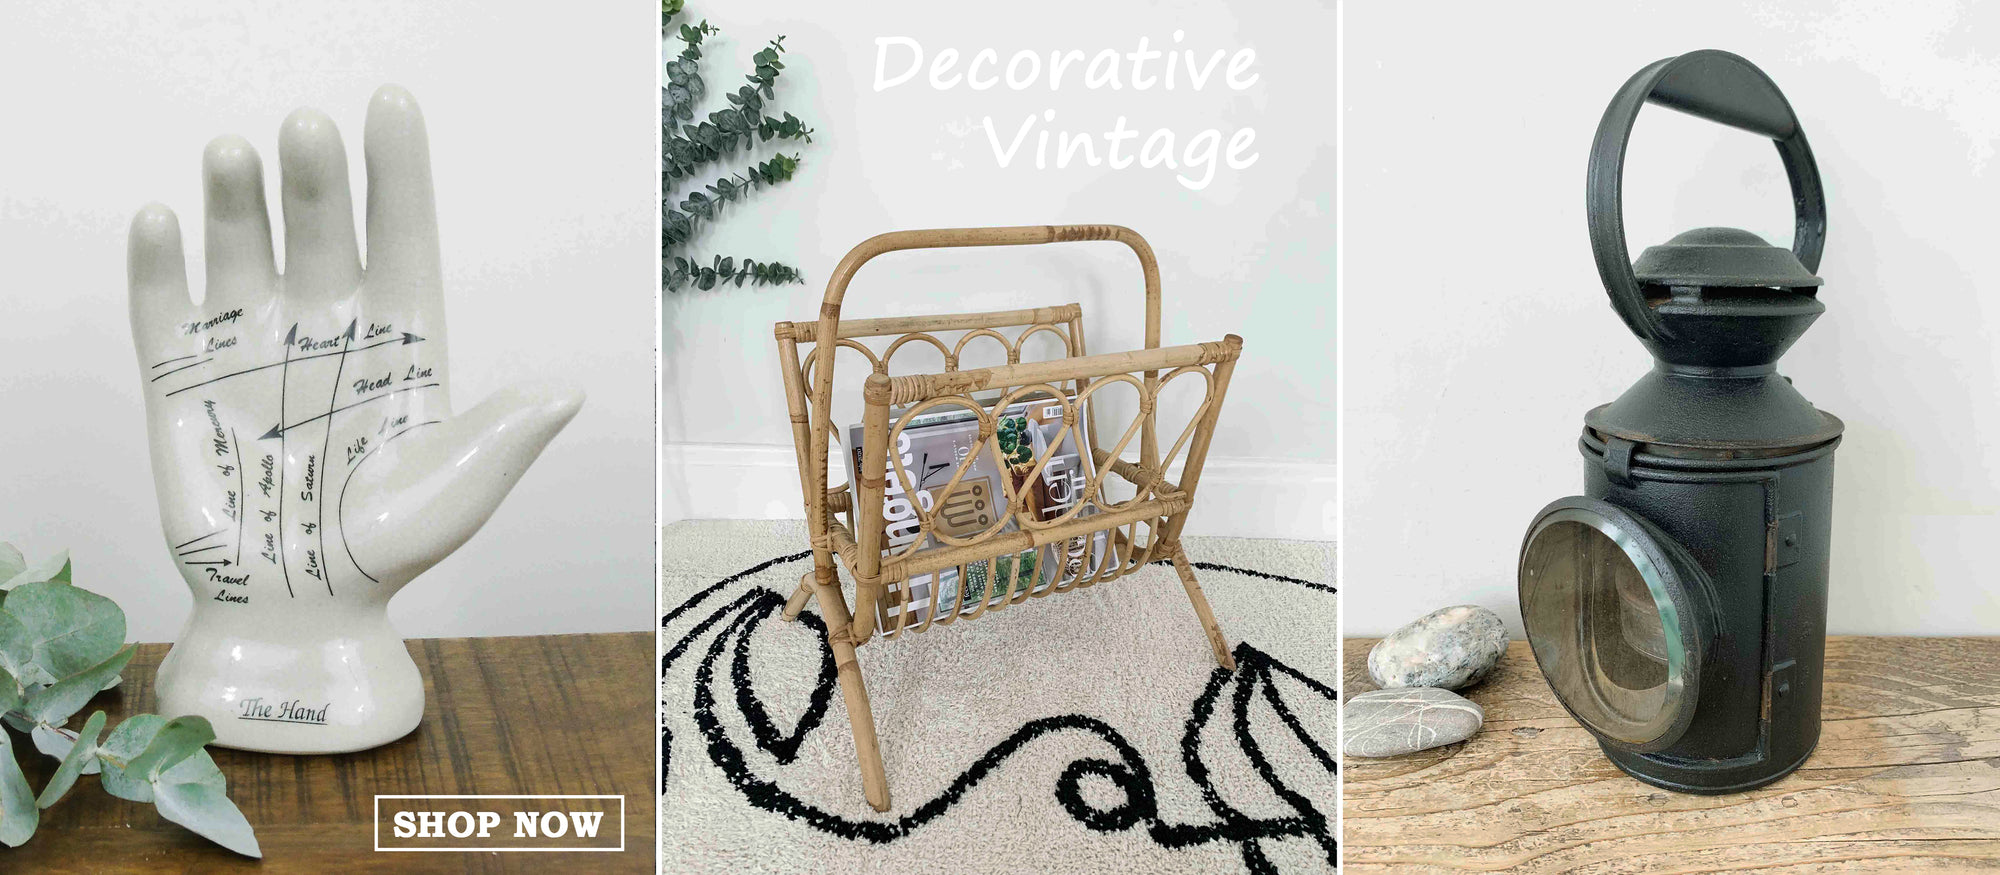 Decorative | The Den & Now